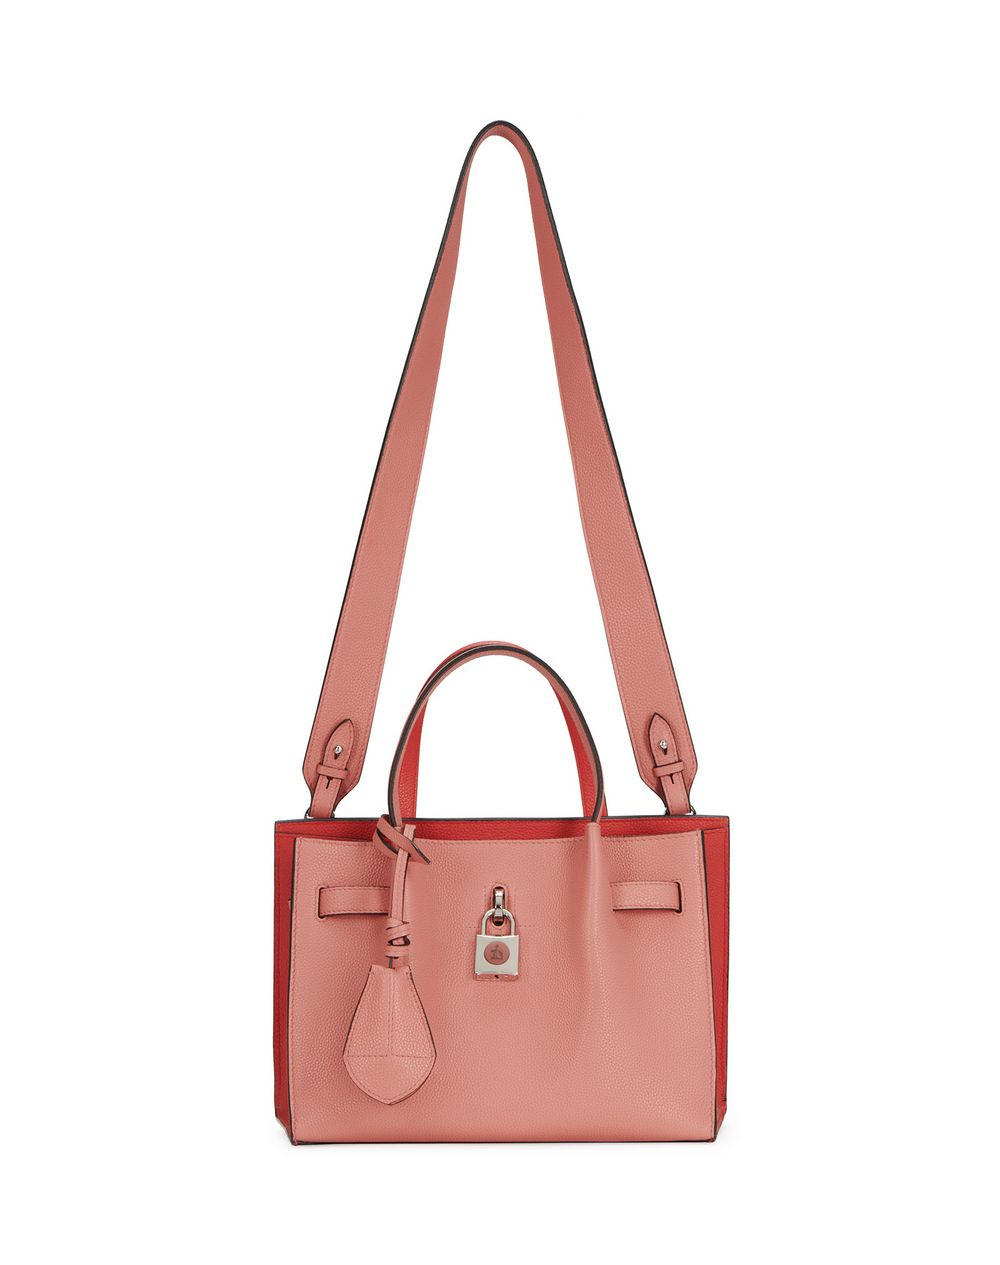 GRAINED LEATHER BOGEY BAG SM - Lanvin